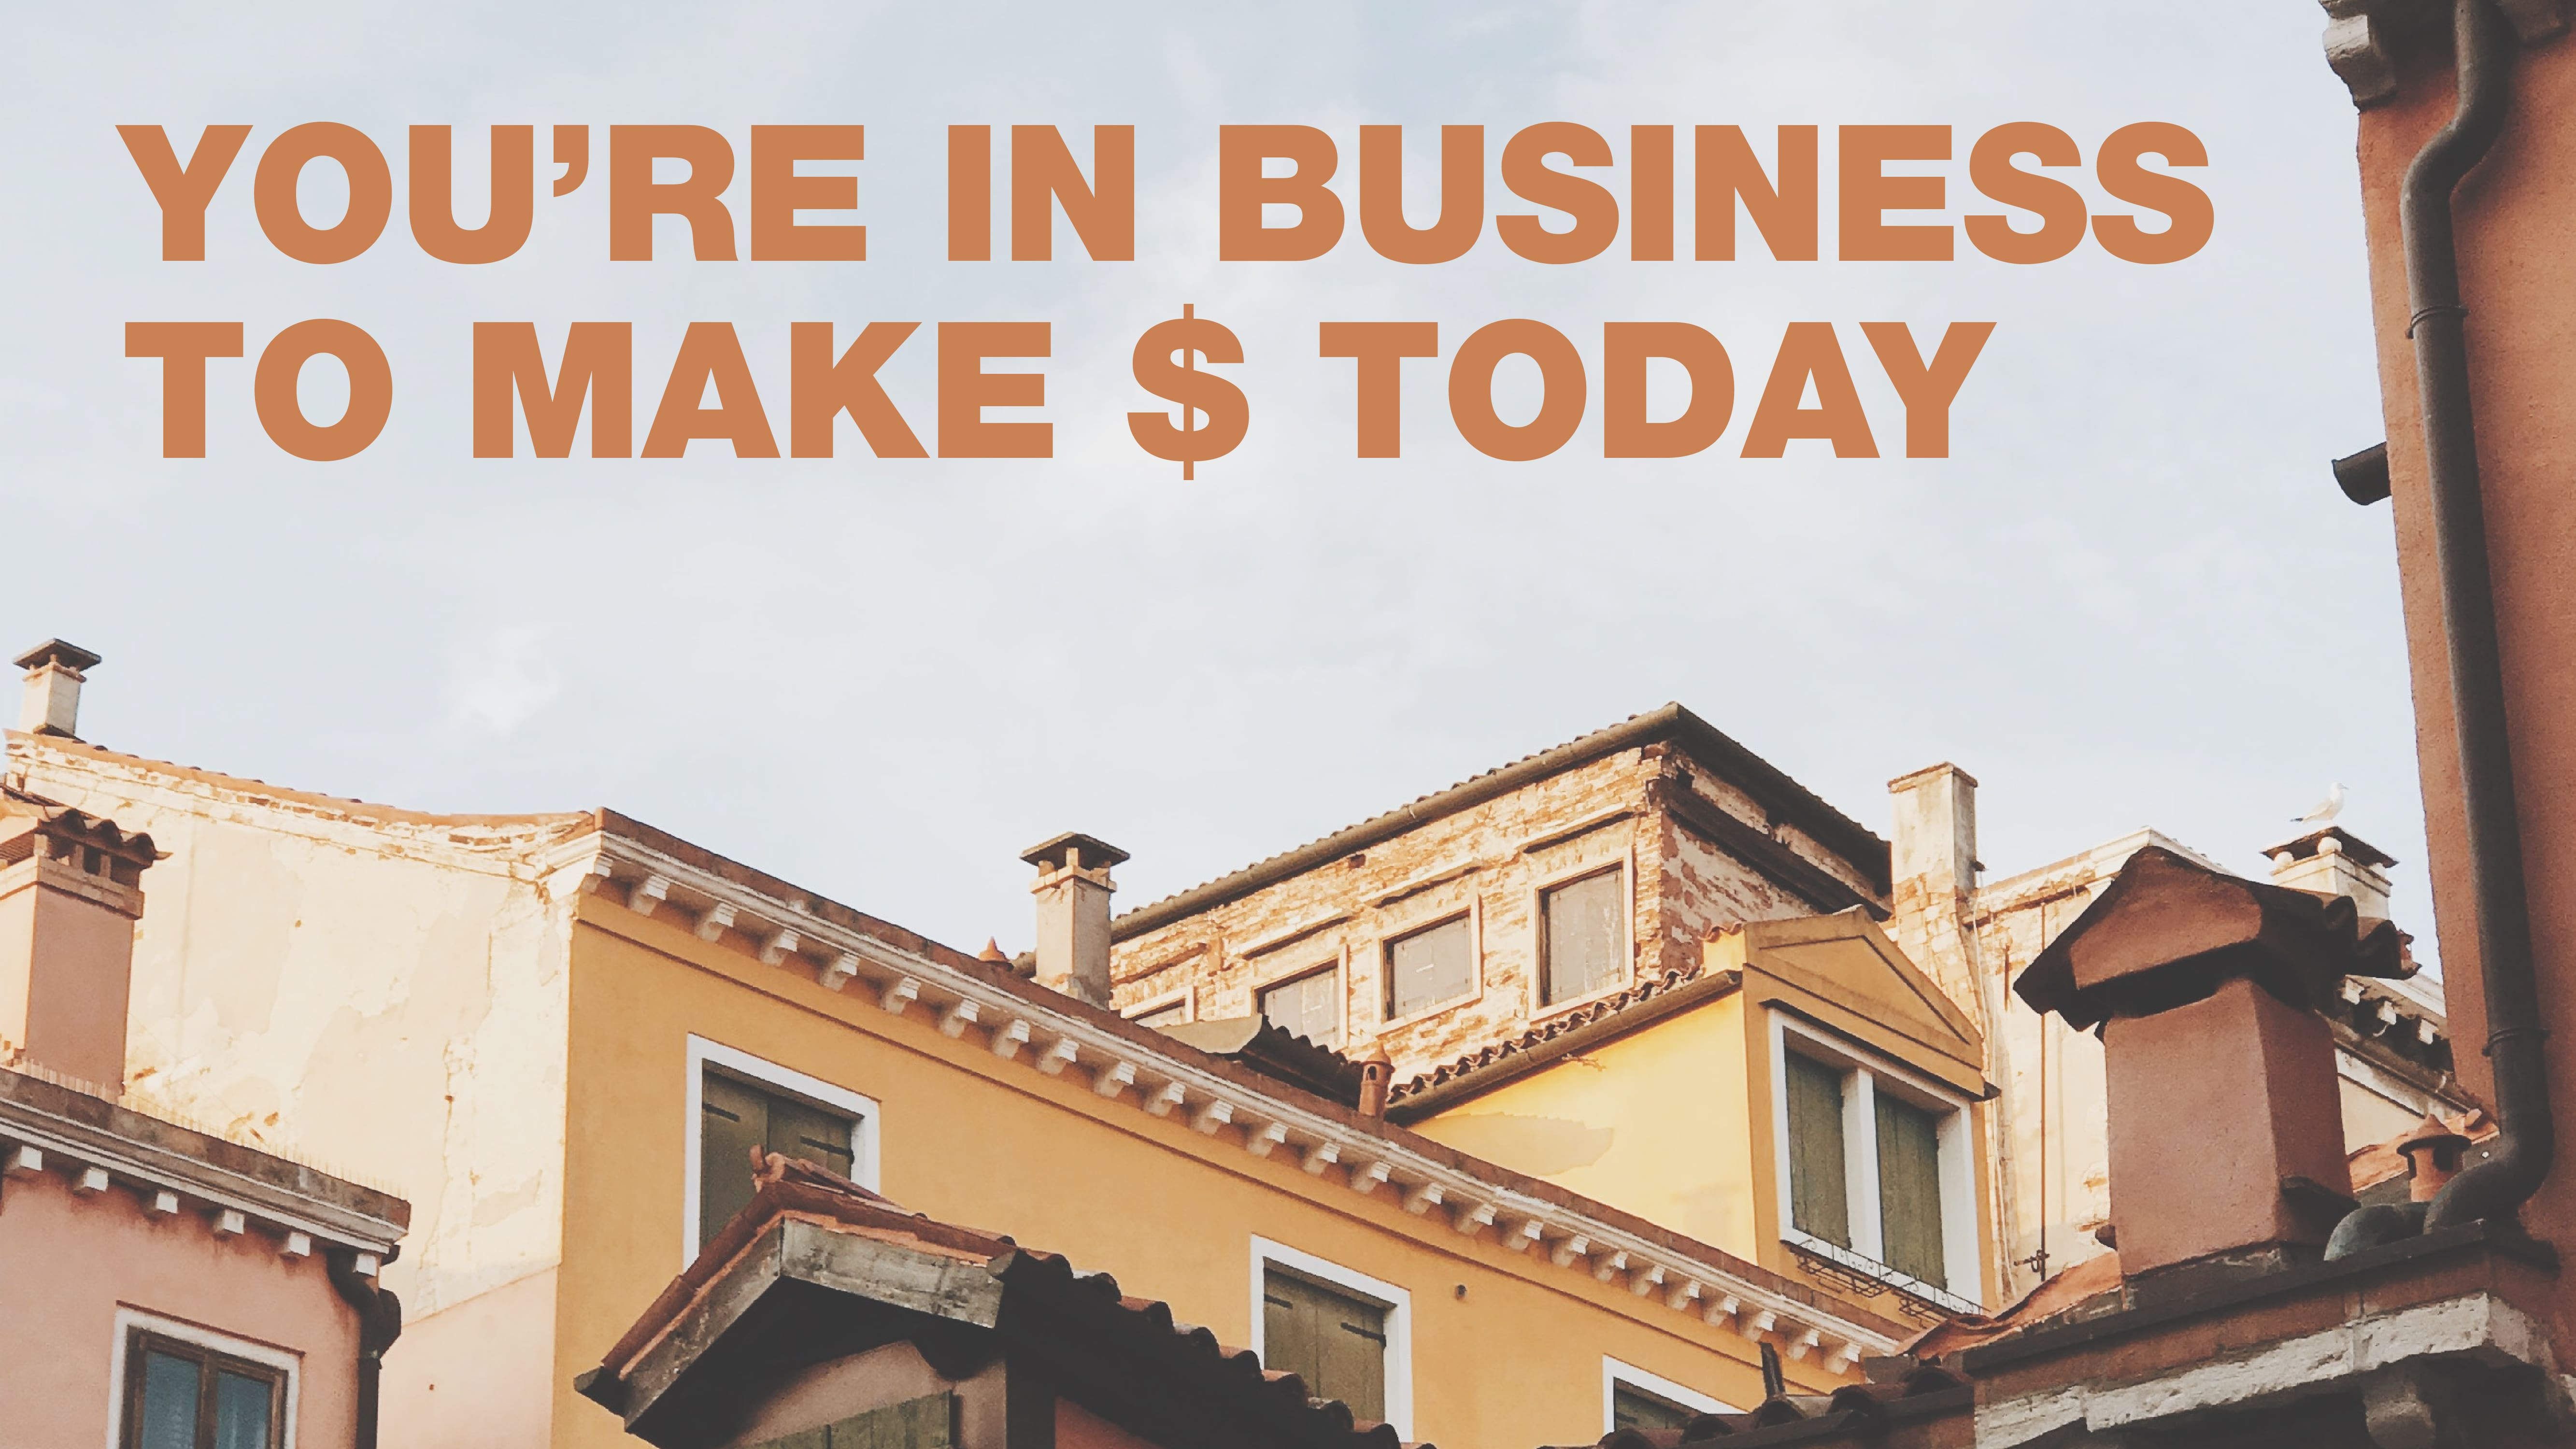 You're in business to make $ today